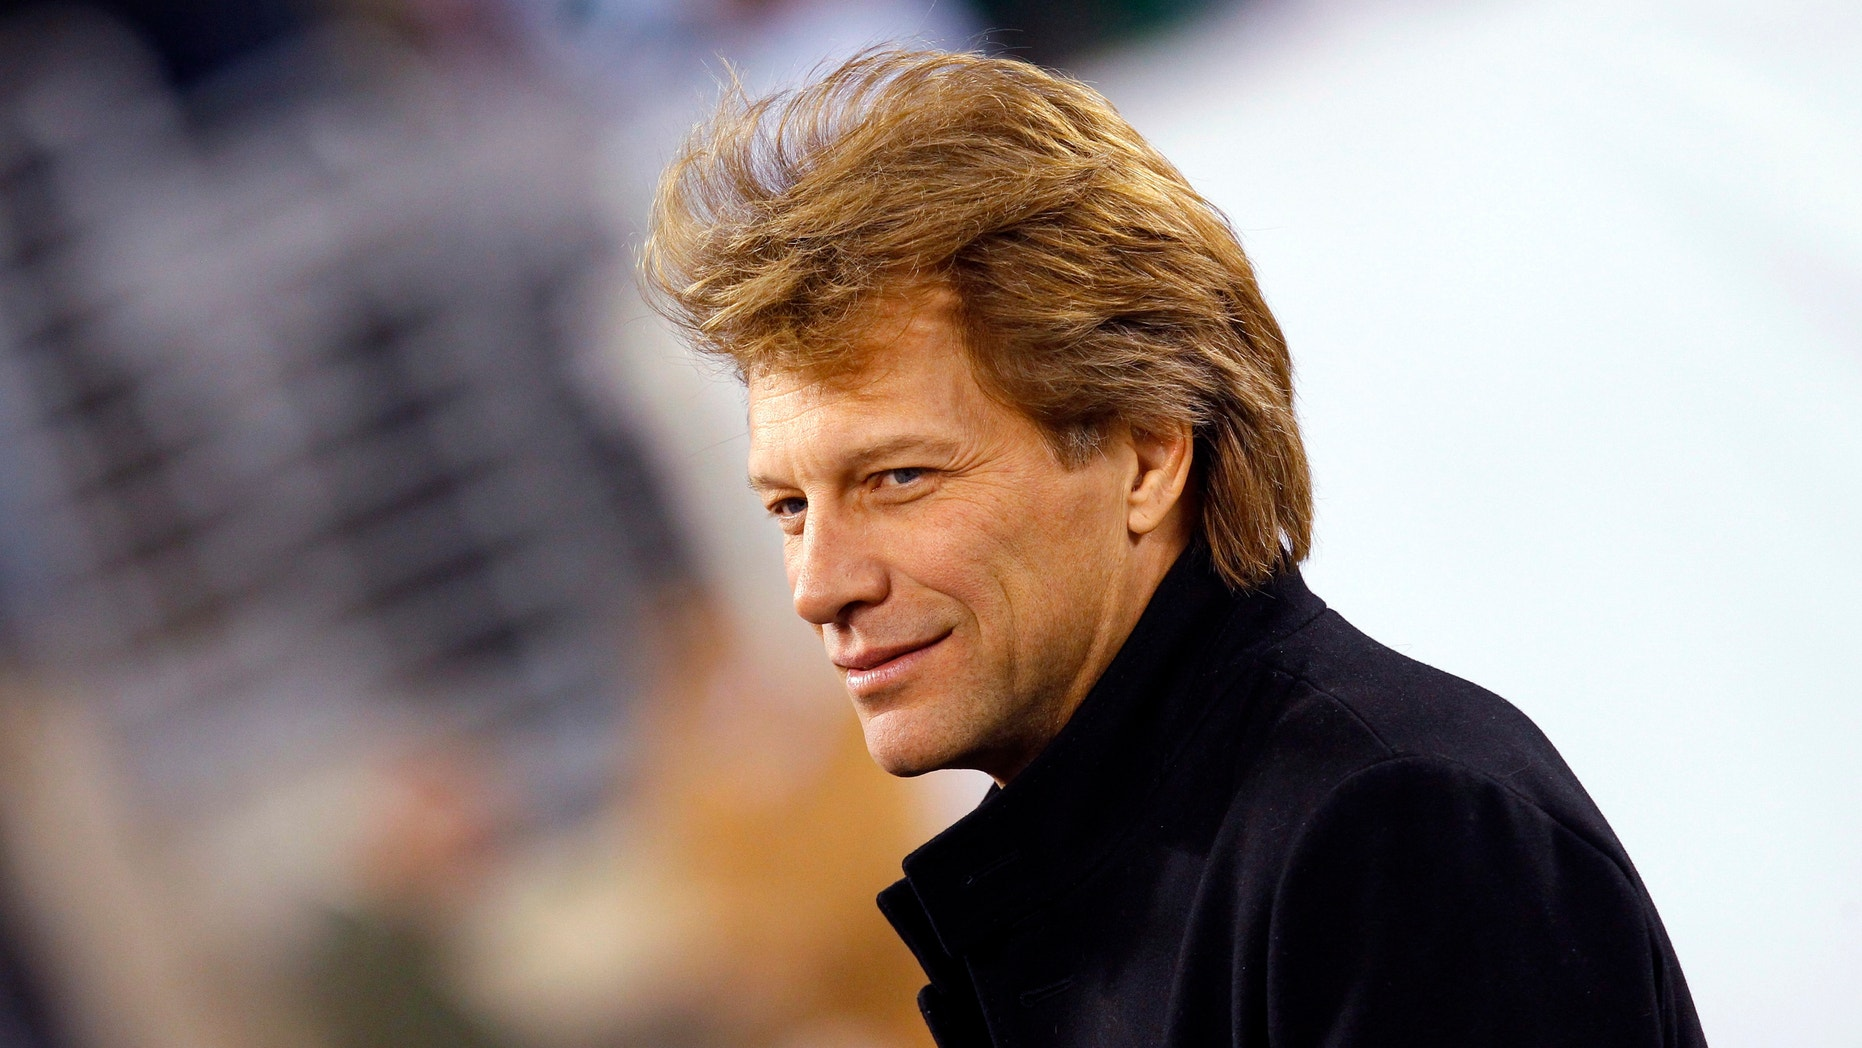 Musician Jon Bon Jovi walks on the field before the NFL football game between the New England Patriots and the New York Jets in East Rutherford, New Jersey, November 13, 2011.